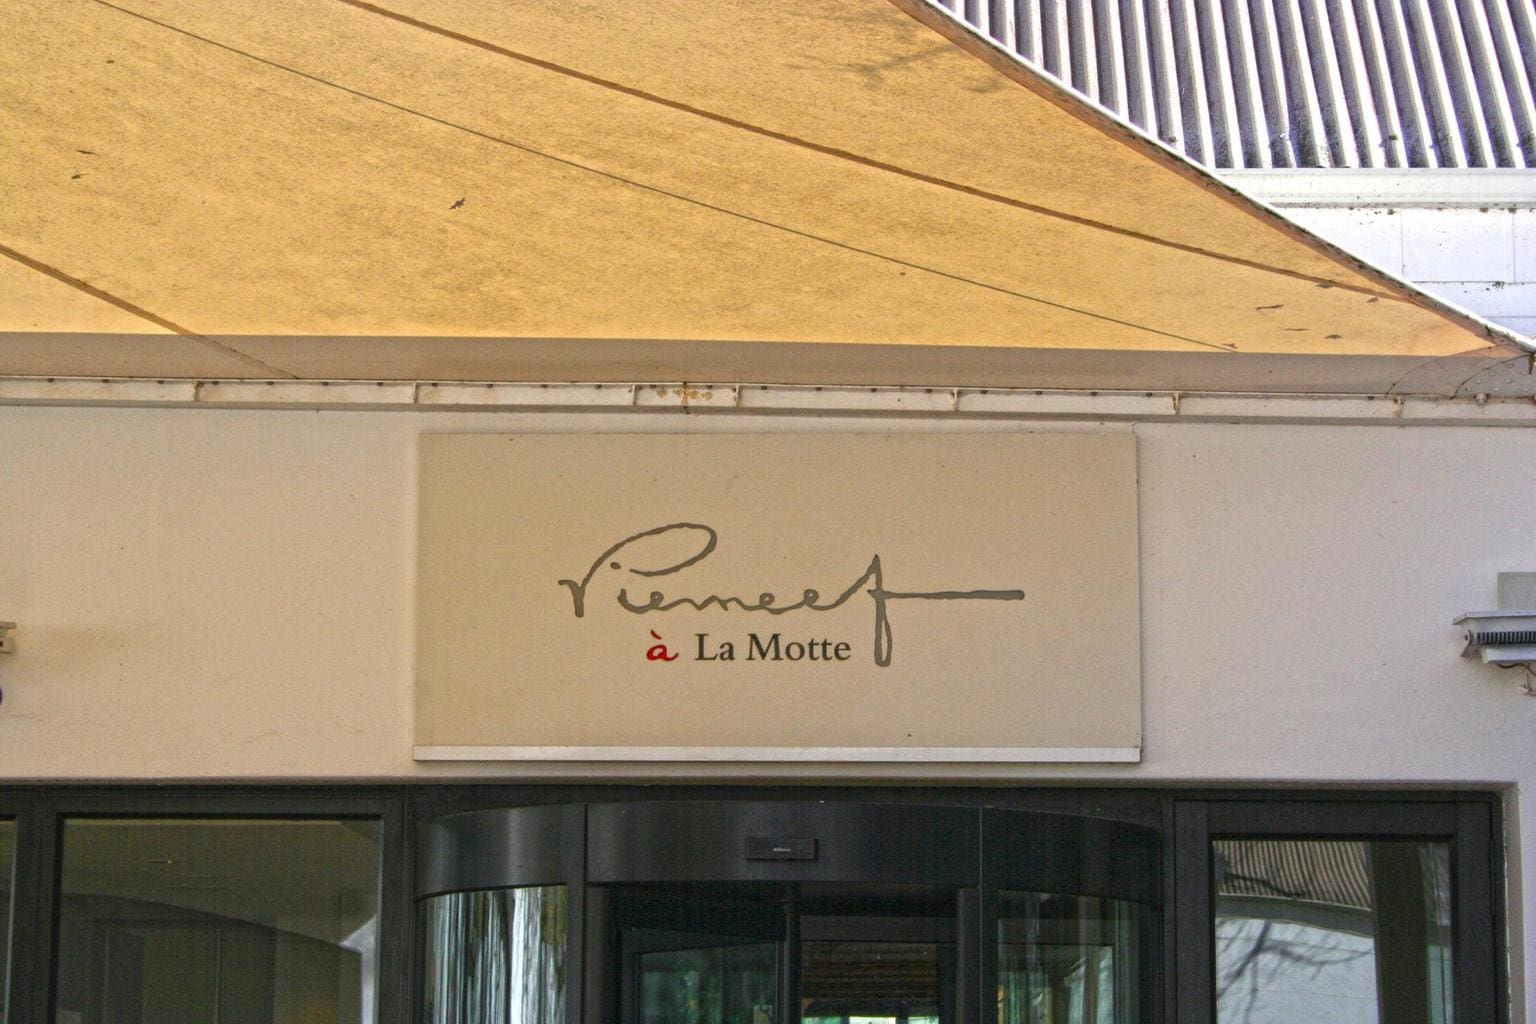 Pierneef a La Motte entrance